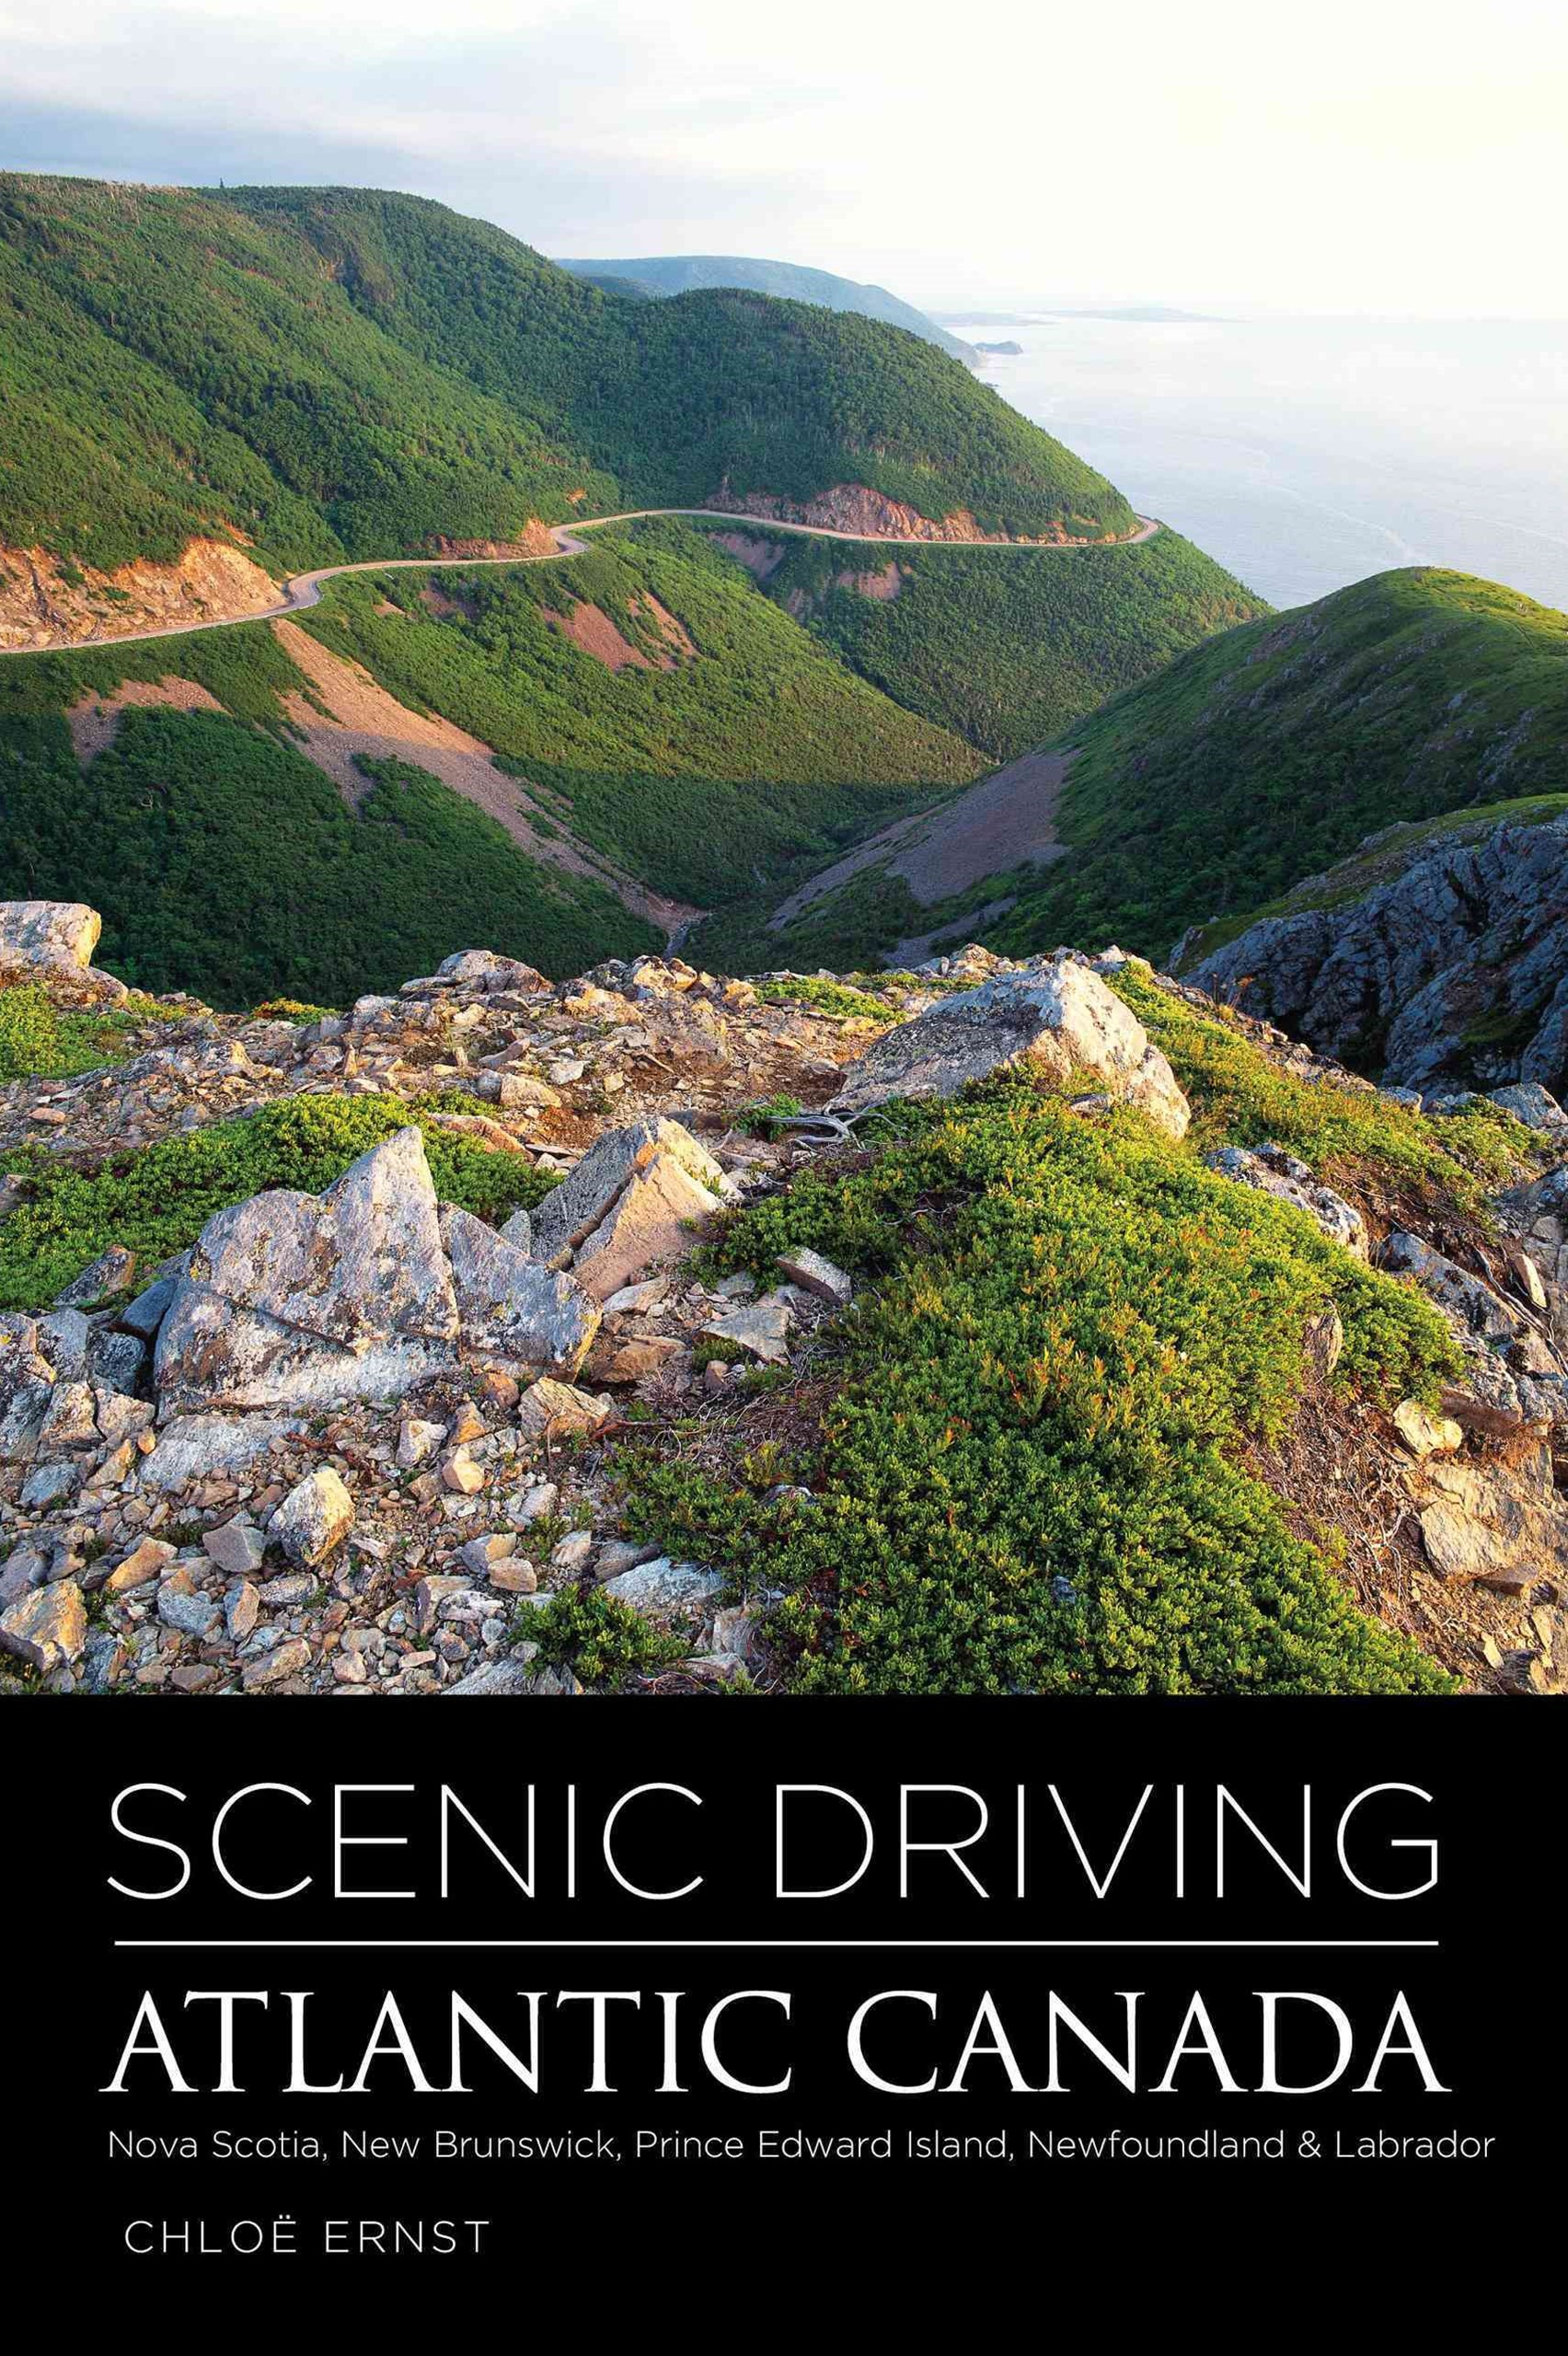 Scenic Driving Atlantic Canada